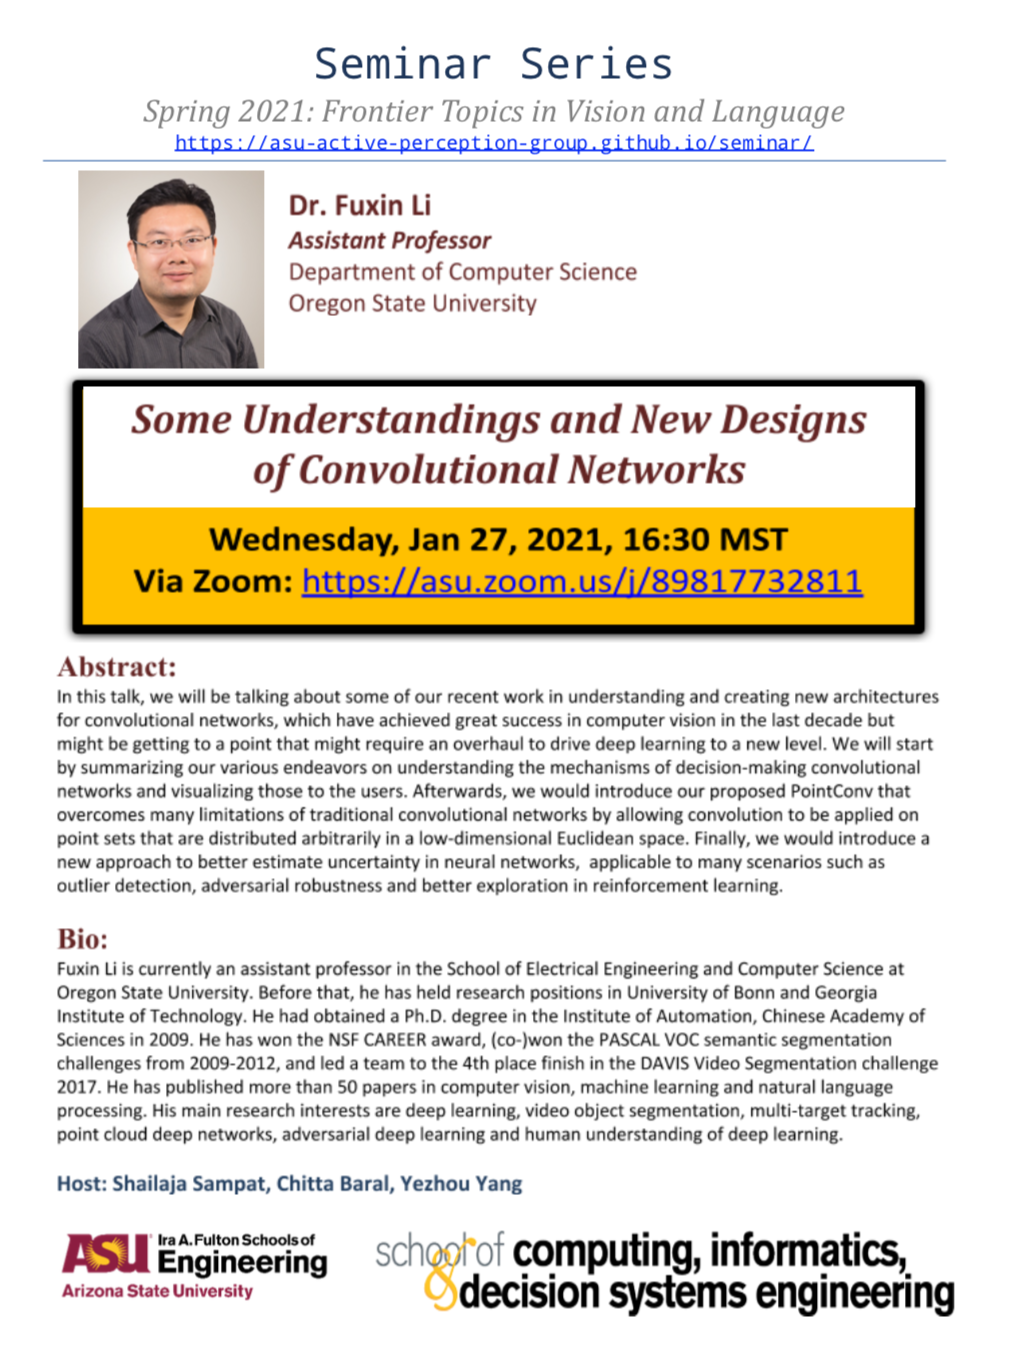 Fuxin Li, Some Understandings and New Designs of Convolutional Networks, January 27, 2021